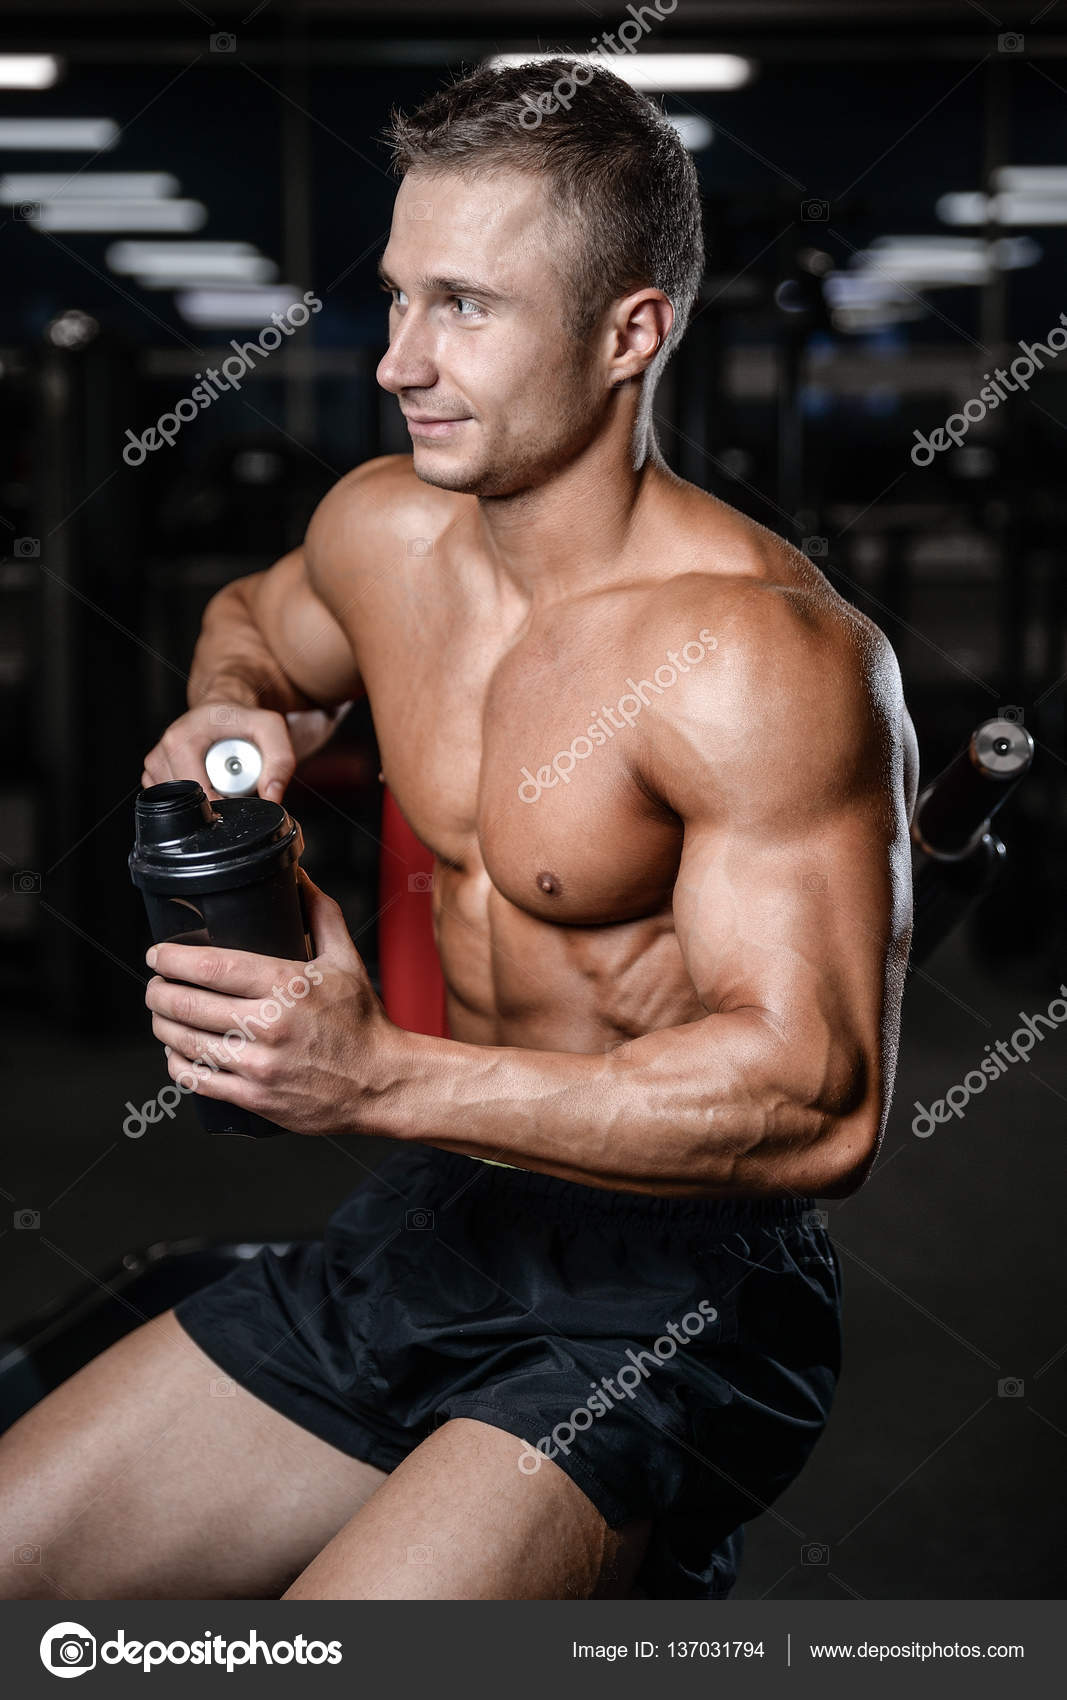 nahý muž fitness model